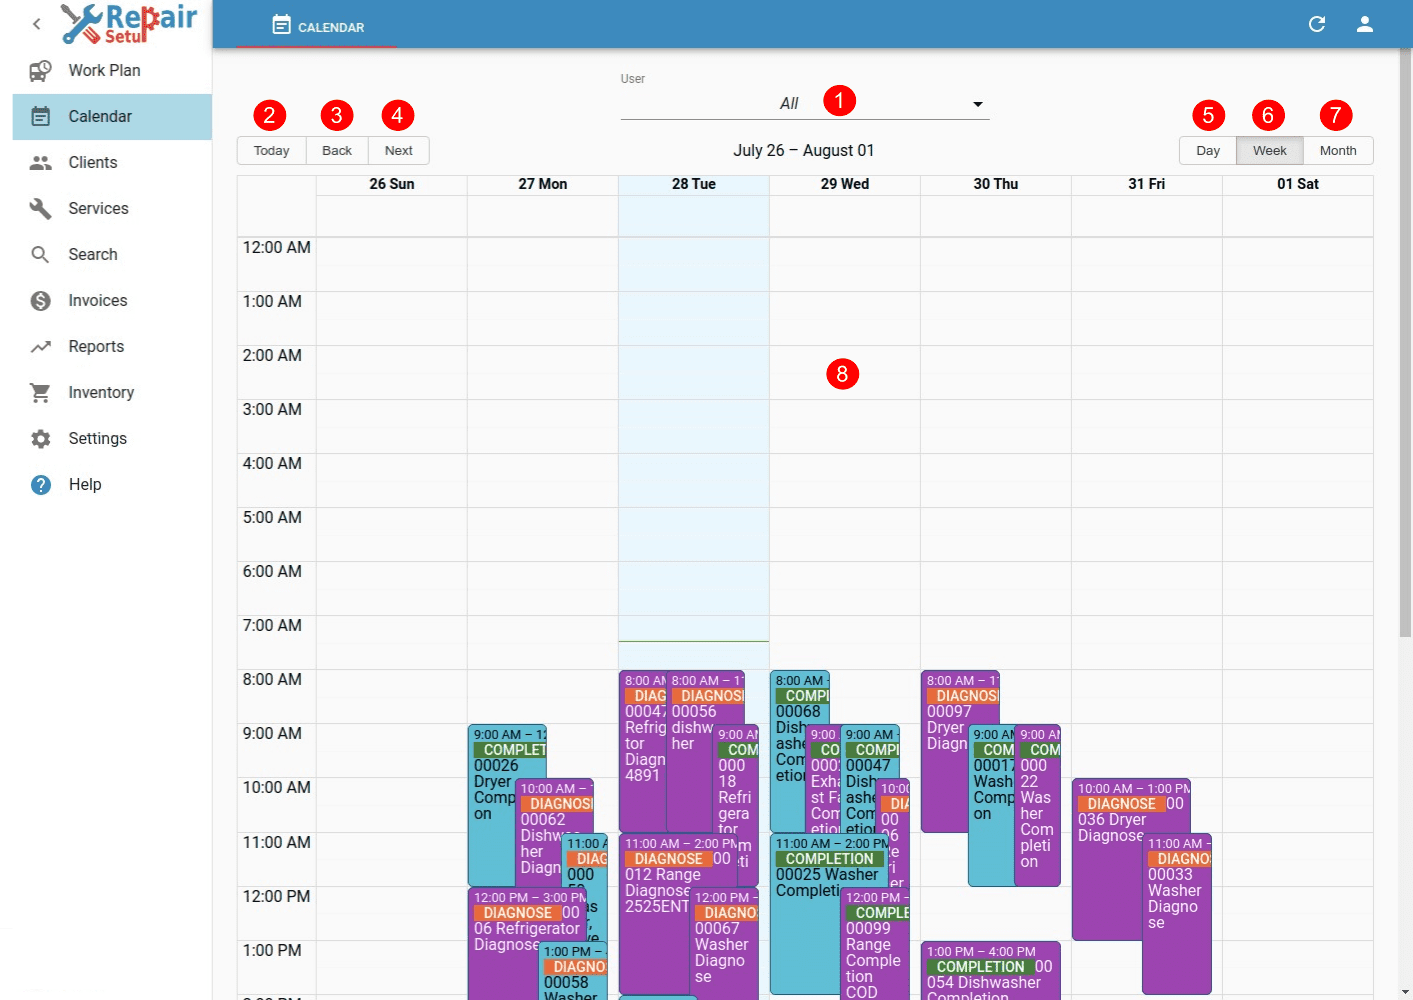 Calendar - Desktop view